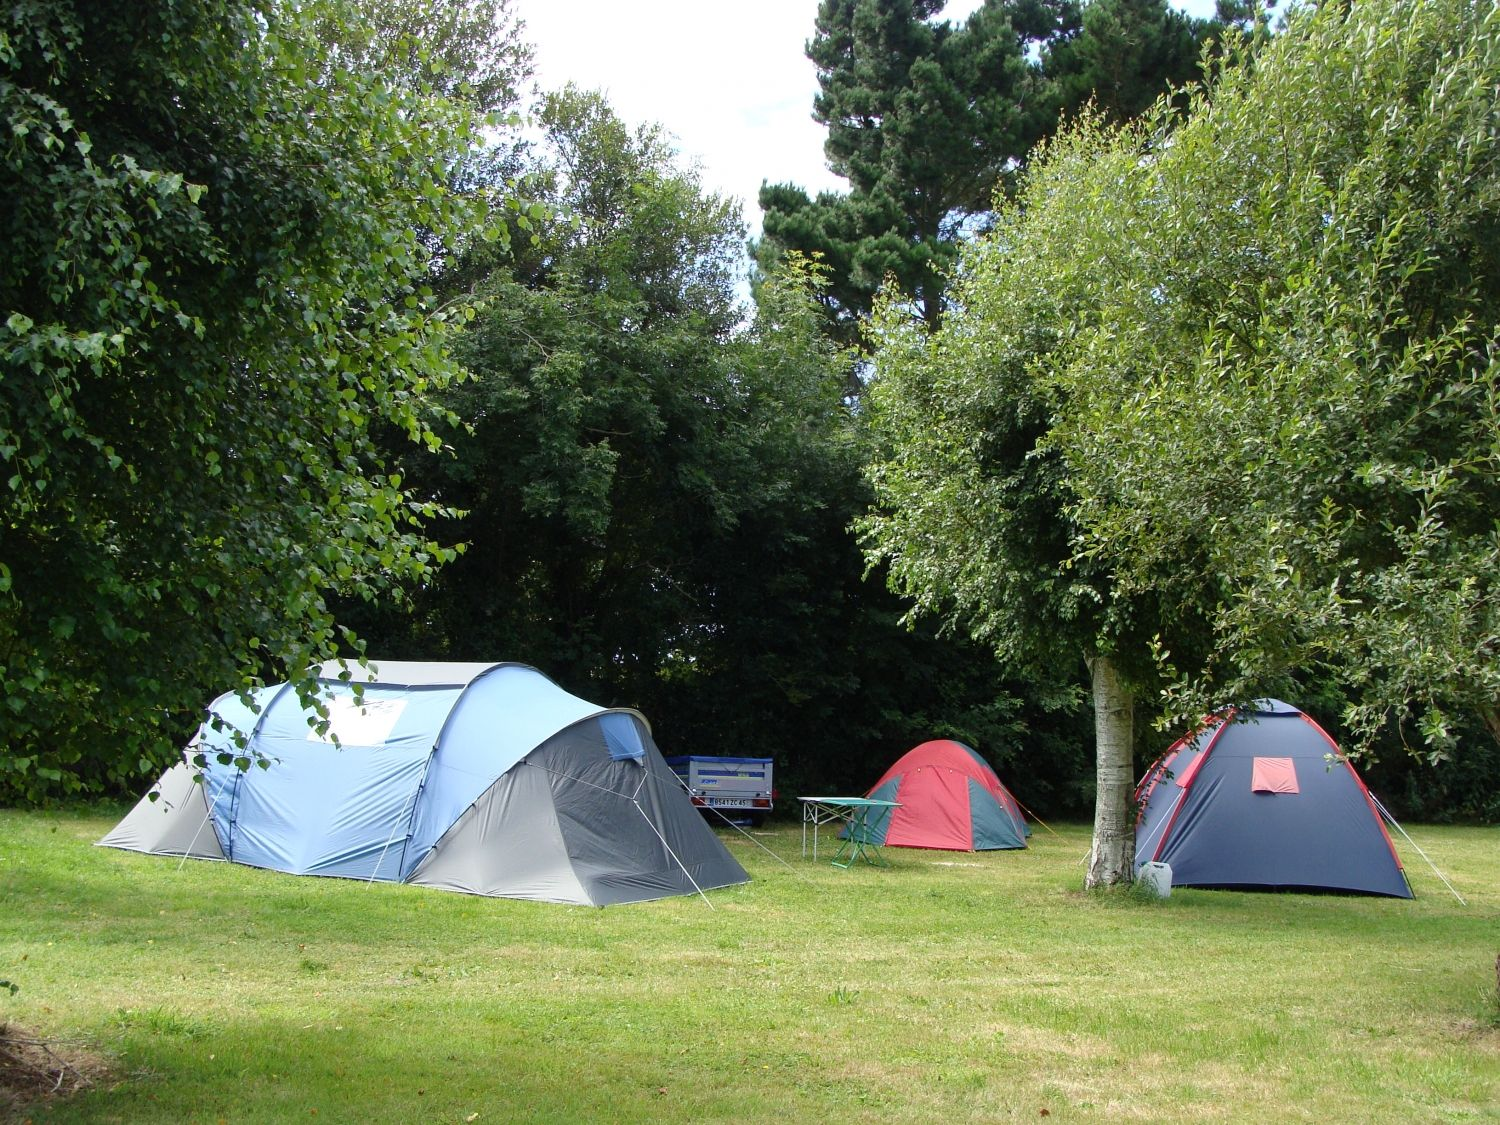 An active camping and holiday park in Brittany with extensive facilities, a water-park and a top location just a mile from the coast.